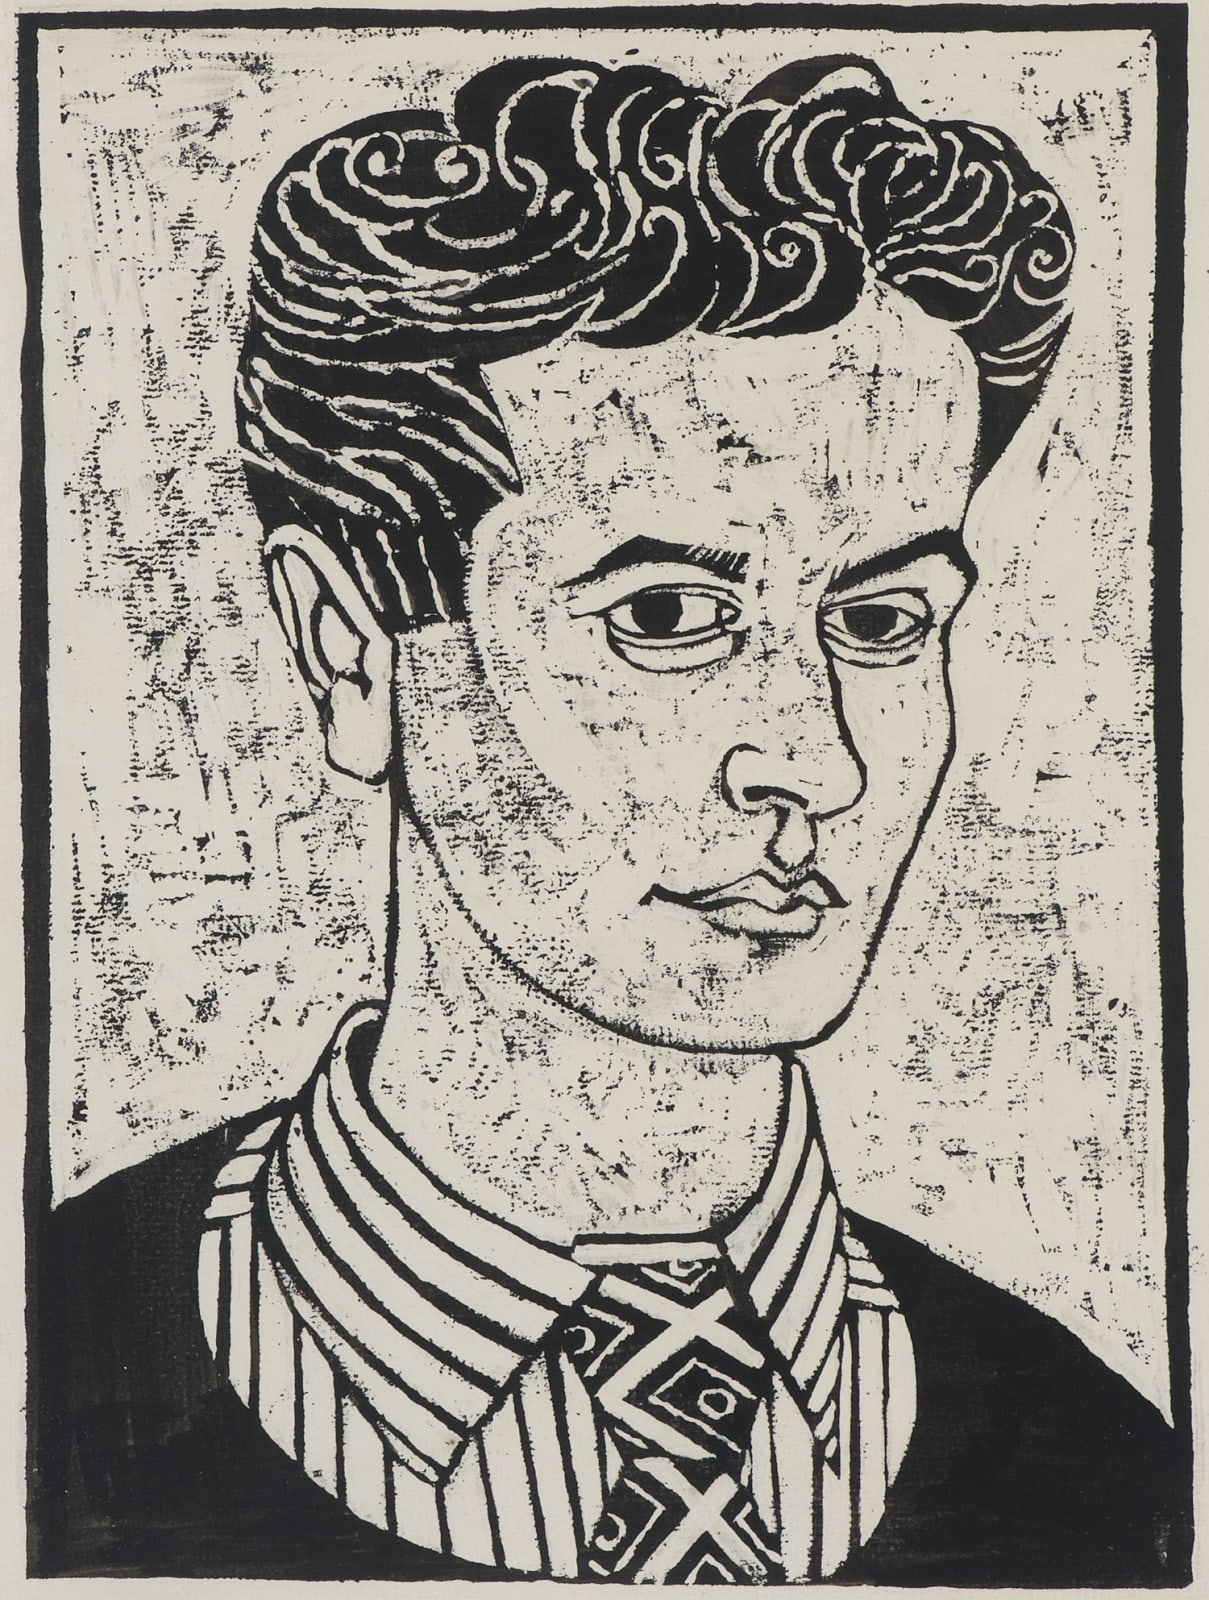 Alfred Daniels (1924-2015) Self Portrait n.d. Pen and ink and white paint on paper and board 35 x 26.5 cm Ben Uri Collection © Alfred Daniels